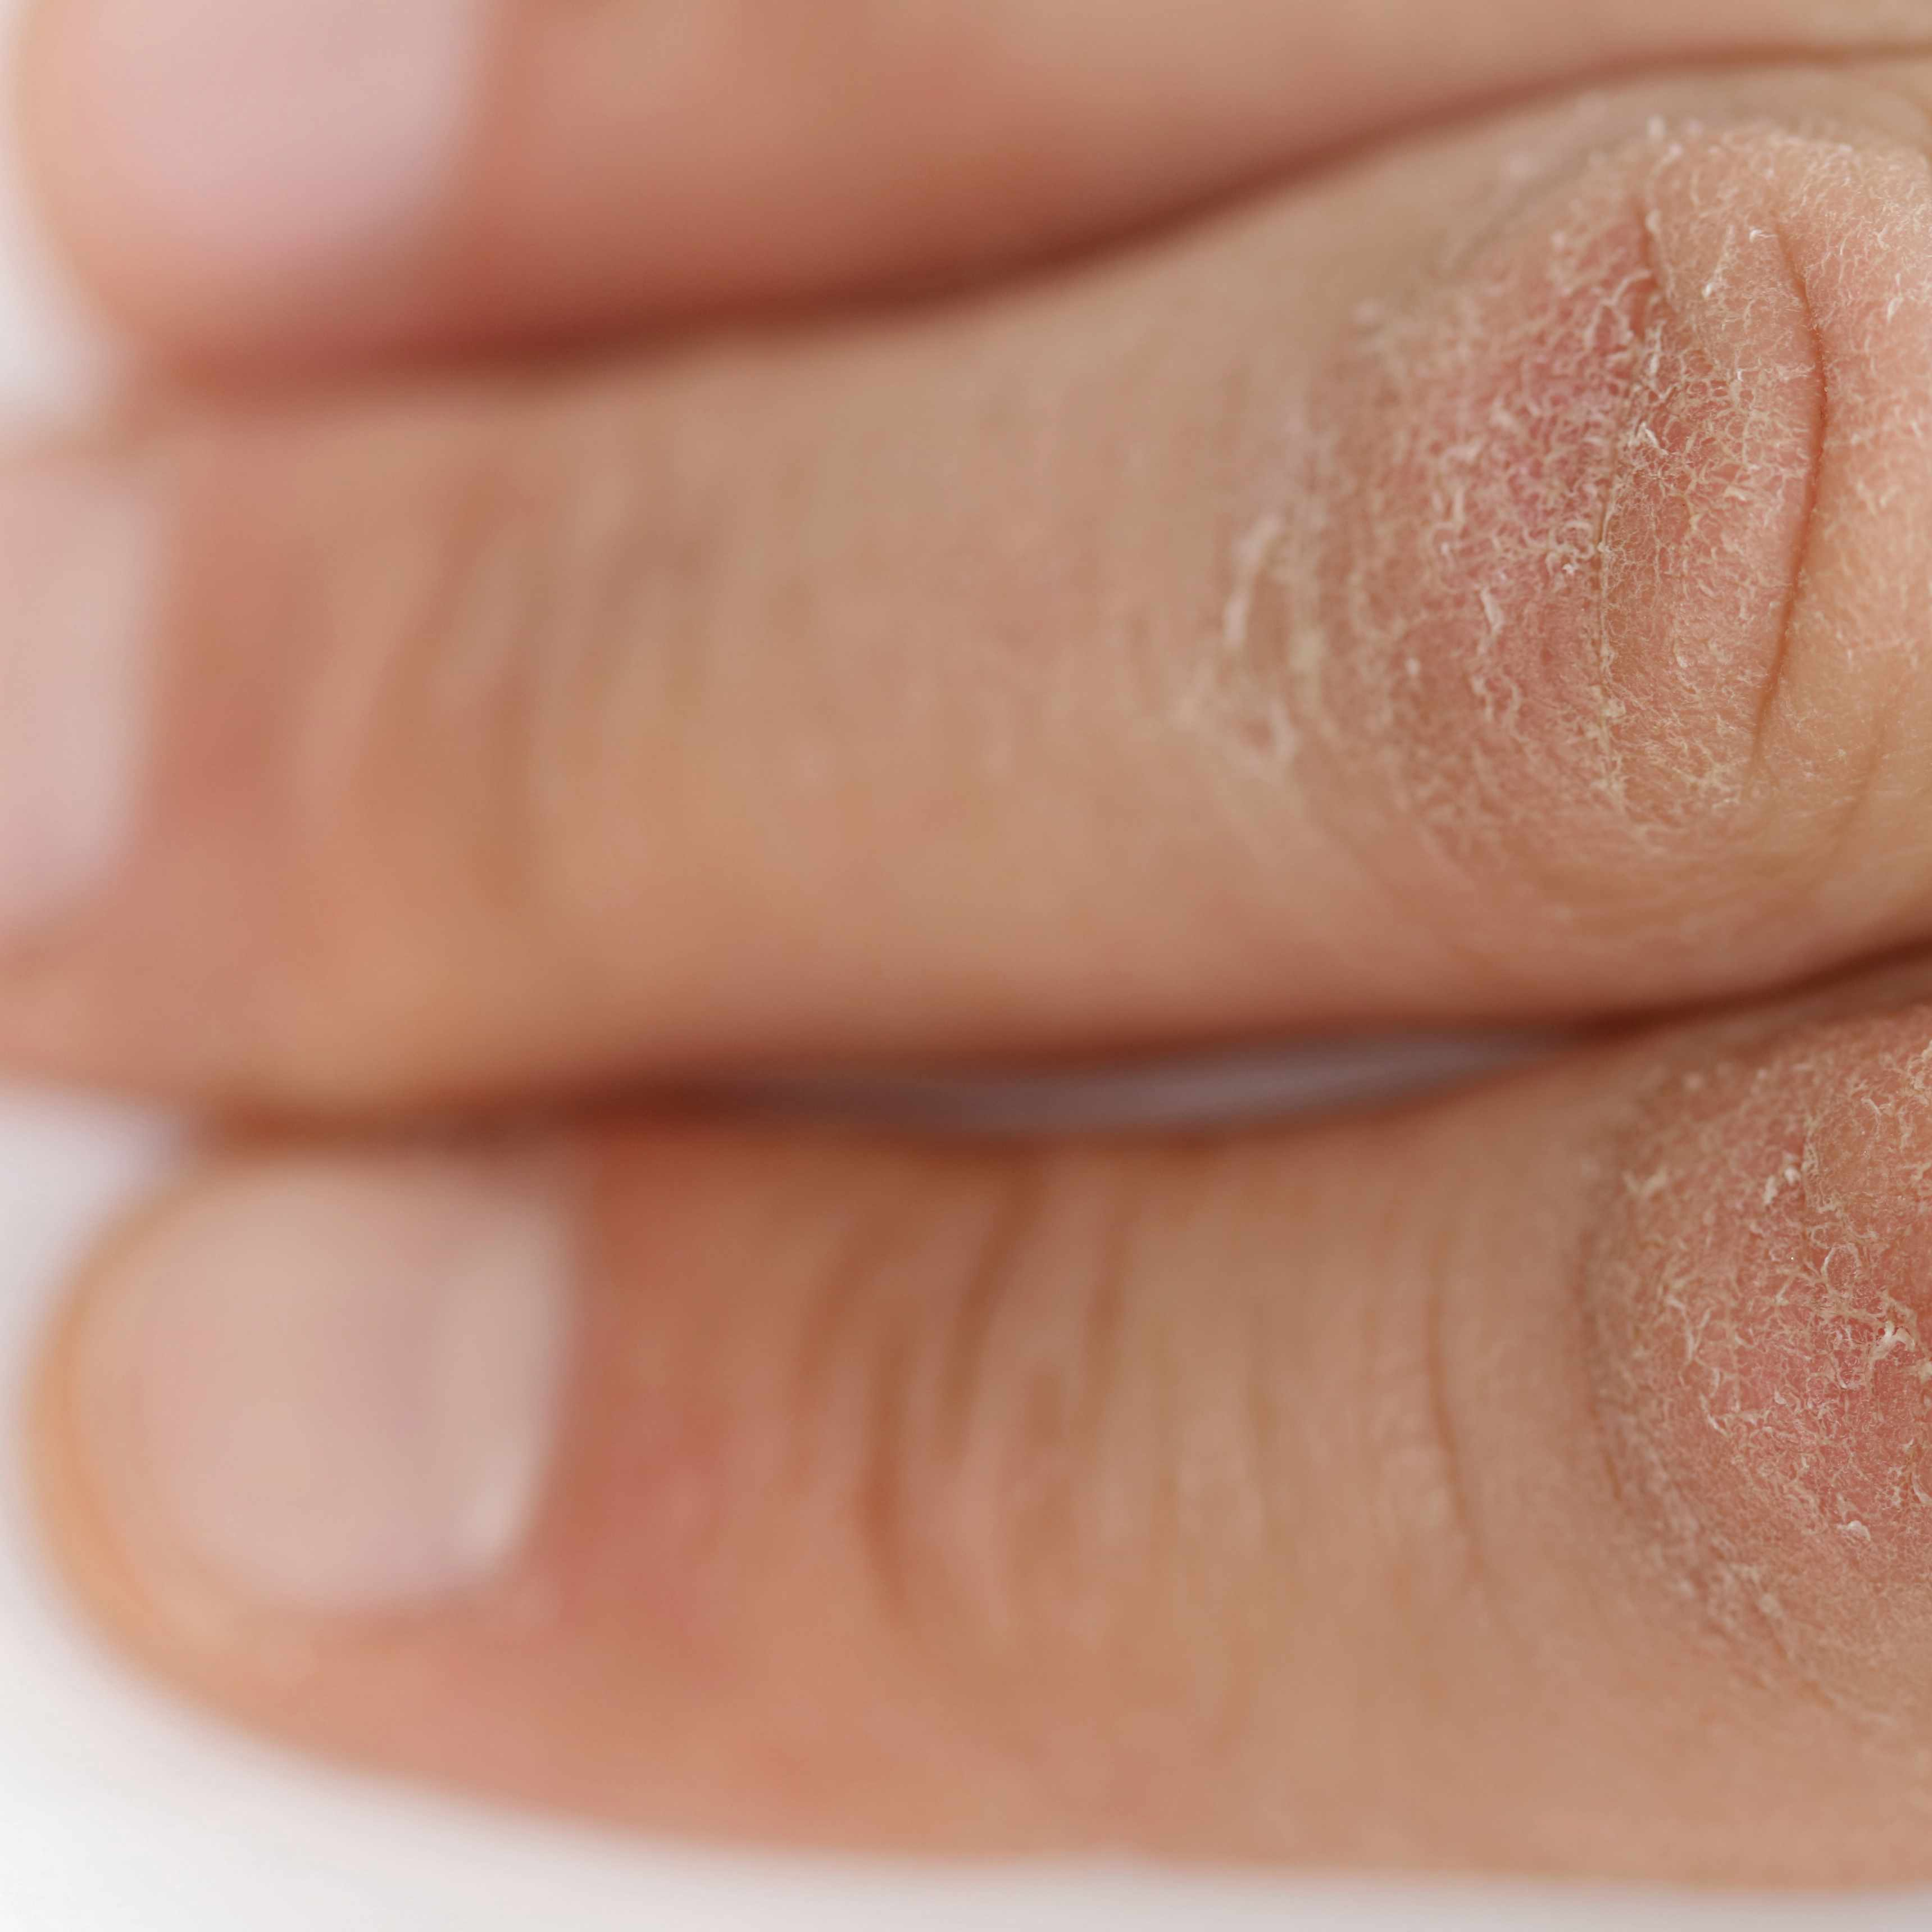 a persons fingers with dry cracked skin